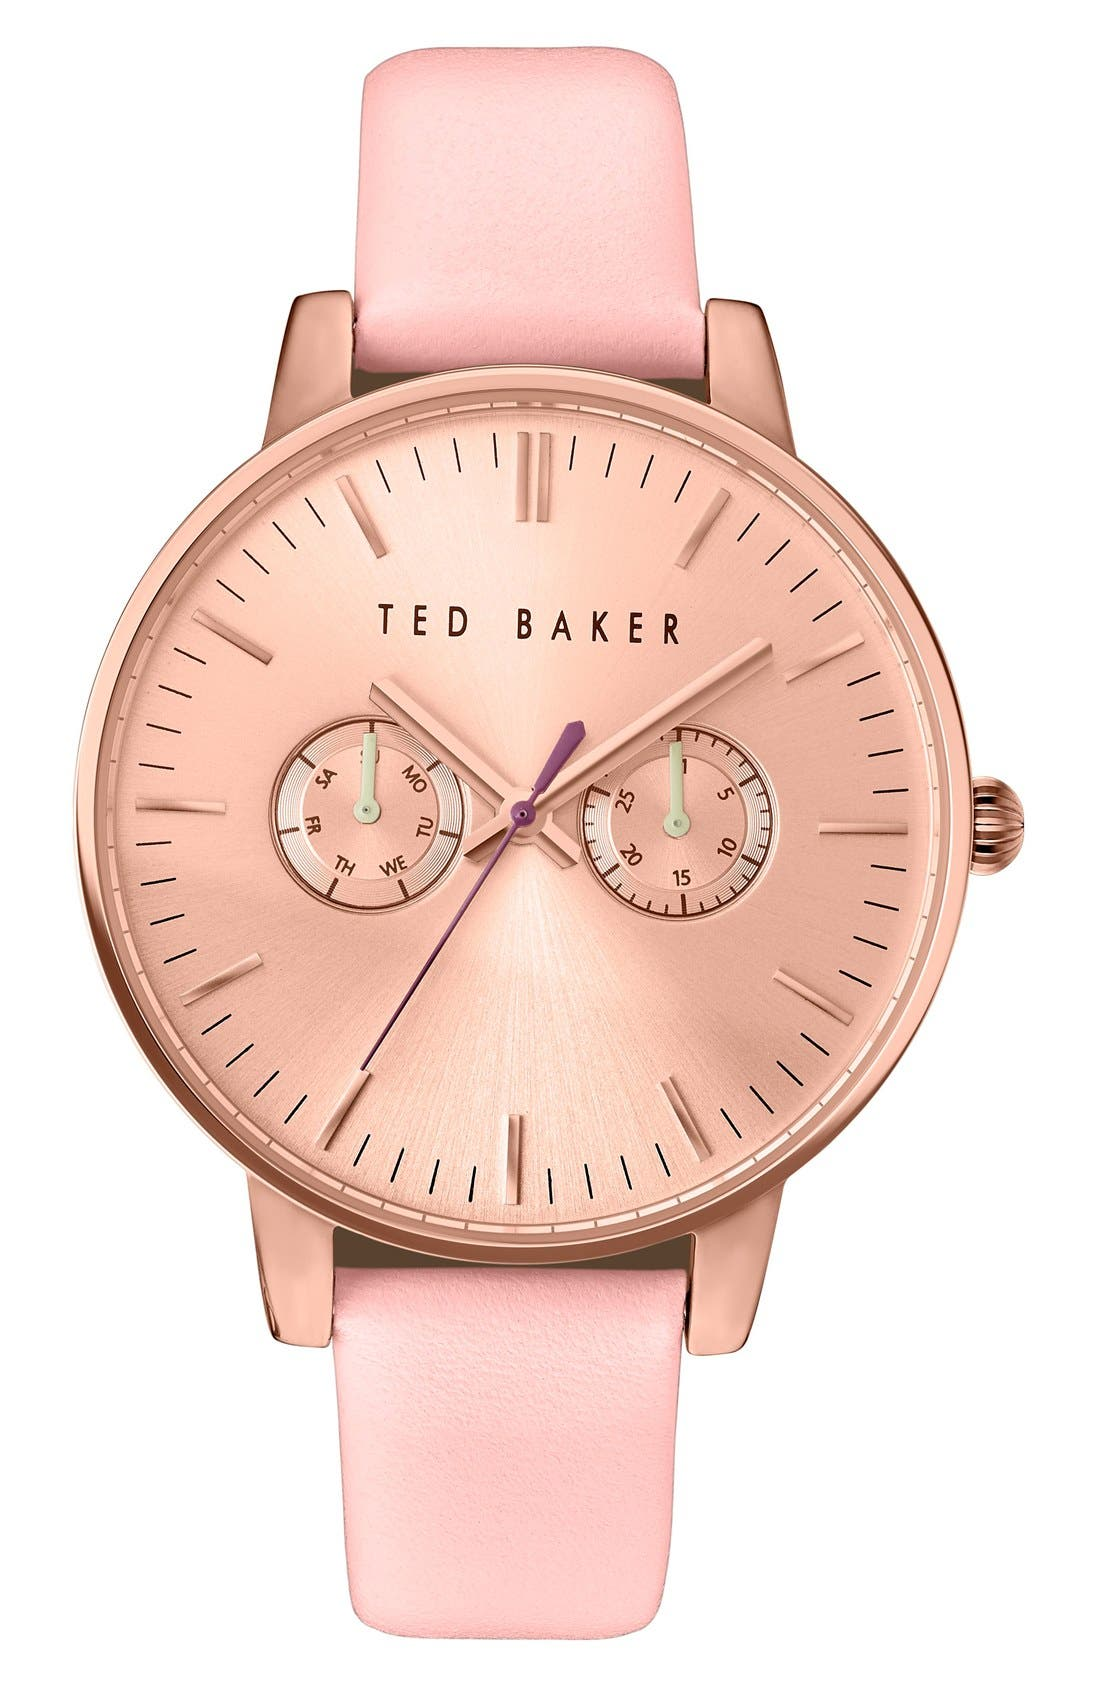 Ted Baker London 'Dress Sport' Multifunction Leather Strap Watch, 40mm